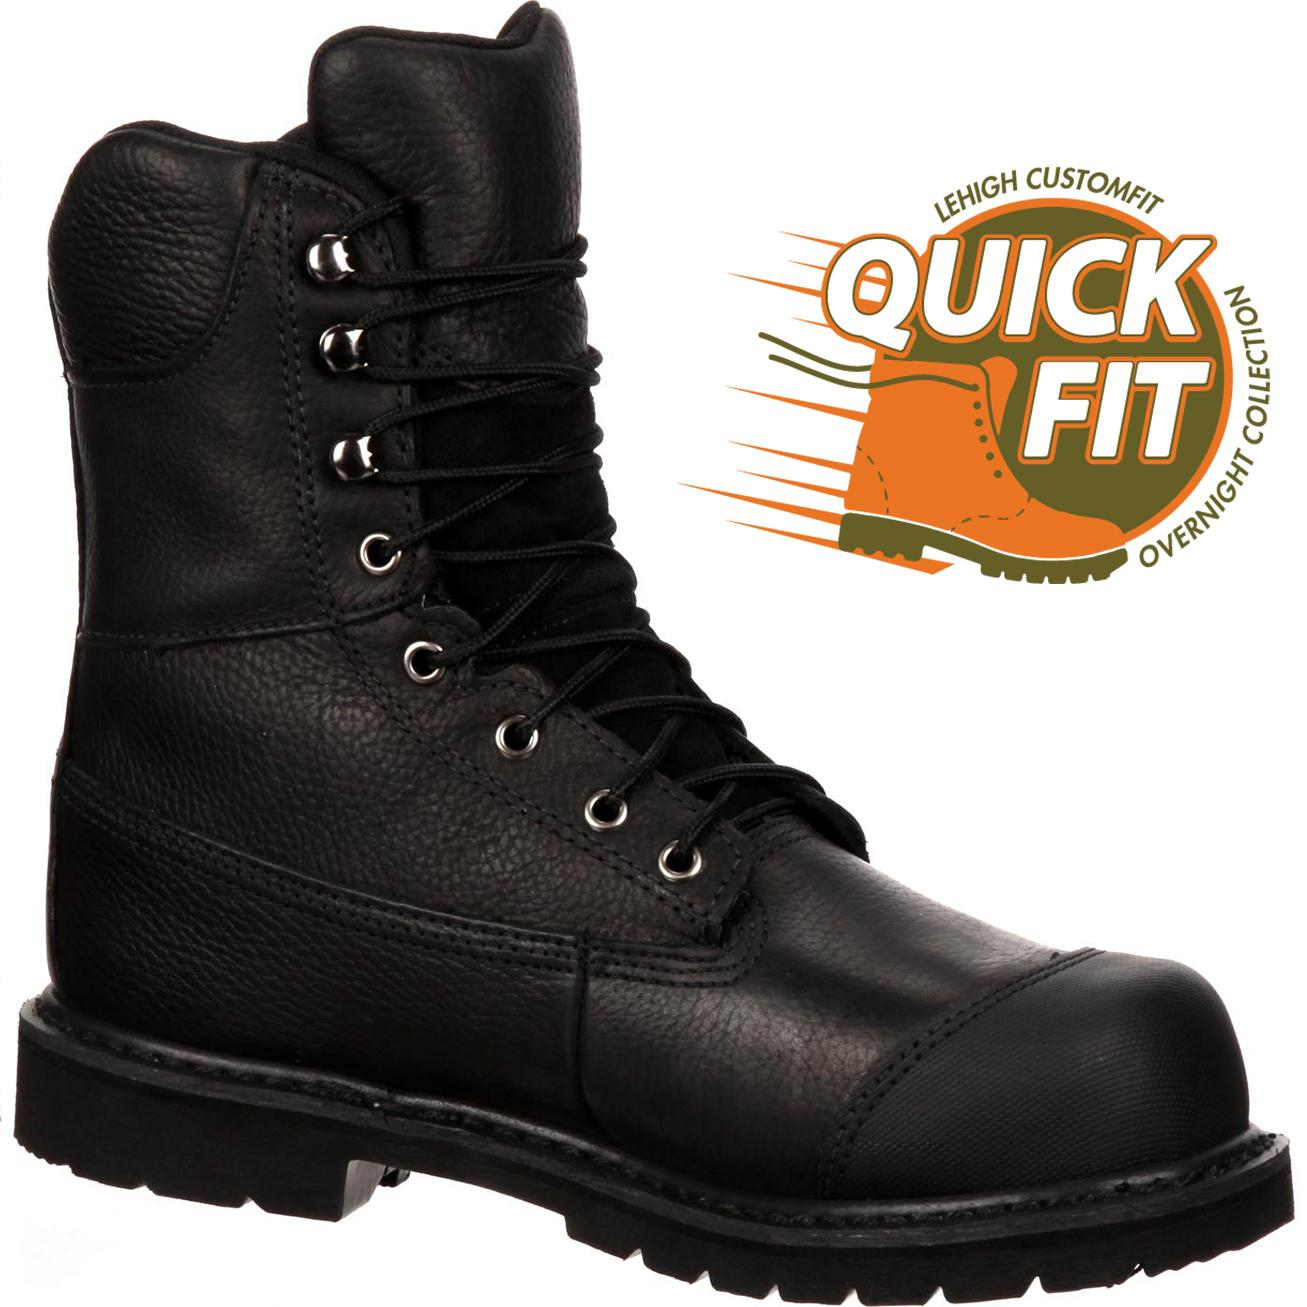 ce664bc2d1b1 QUICKFIT Collection  Lehigh Safety Shoes Unisex Steel Toe Waterproof 200g  Insulated Work BootQUICKFIT Collection  Lehigh Safety Shoes Unisex Steel Toe  ...